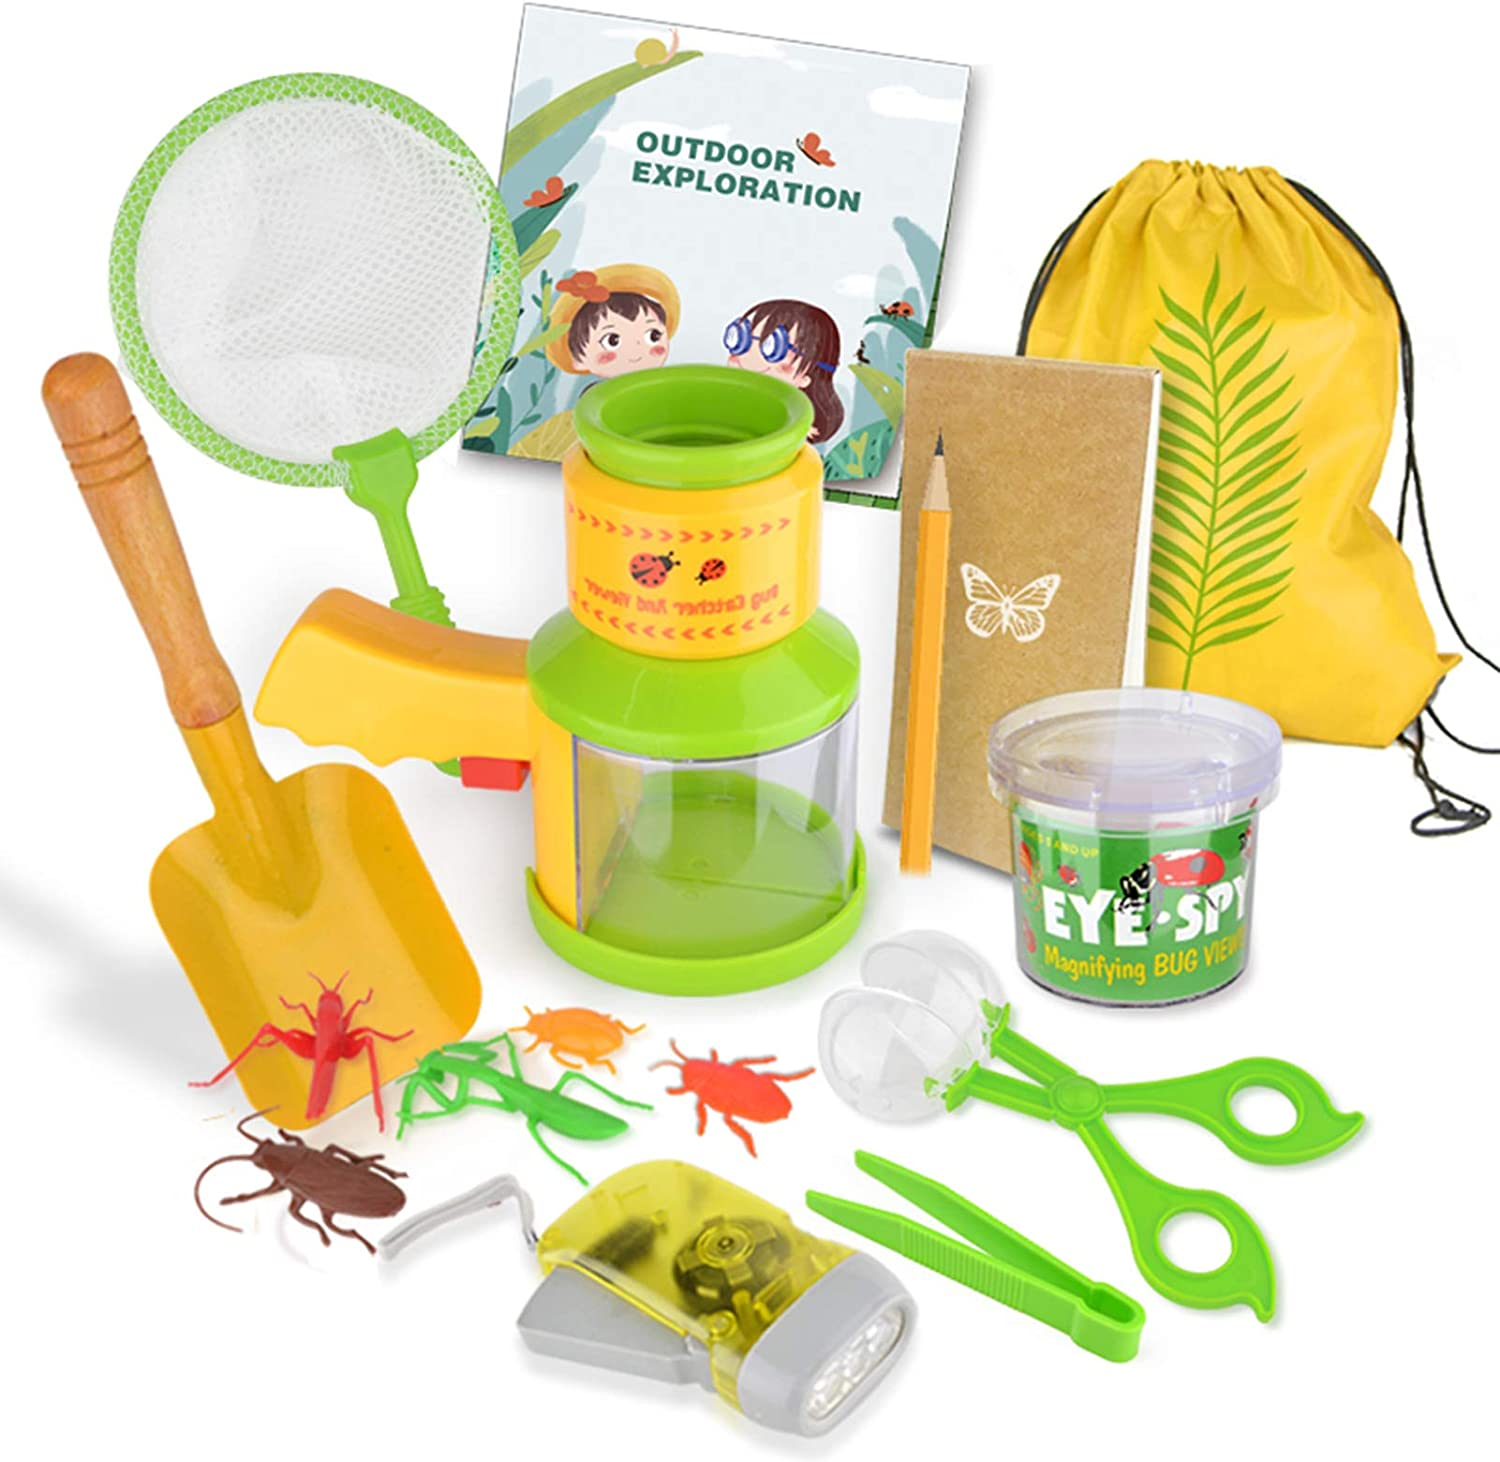 Move on Max 53% OFF Outdoor Explorer Kit Kids New product!! Camping Toys Gr